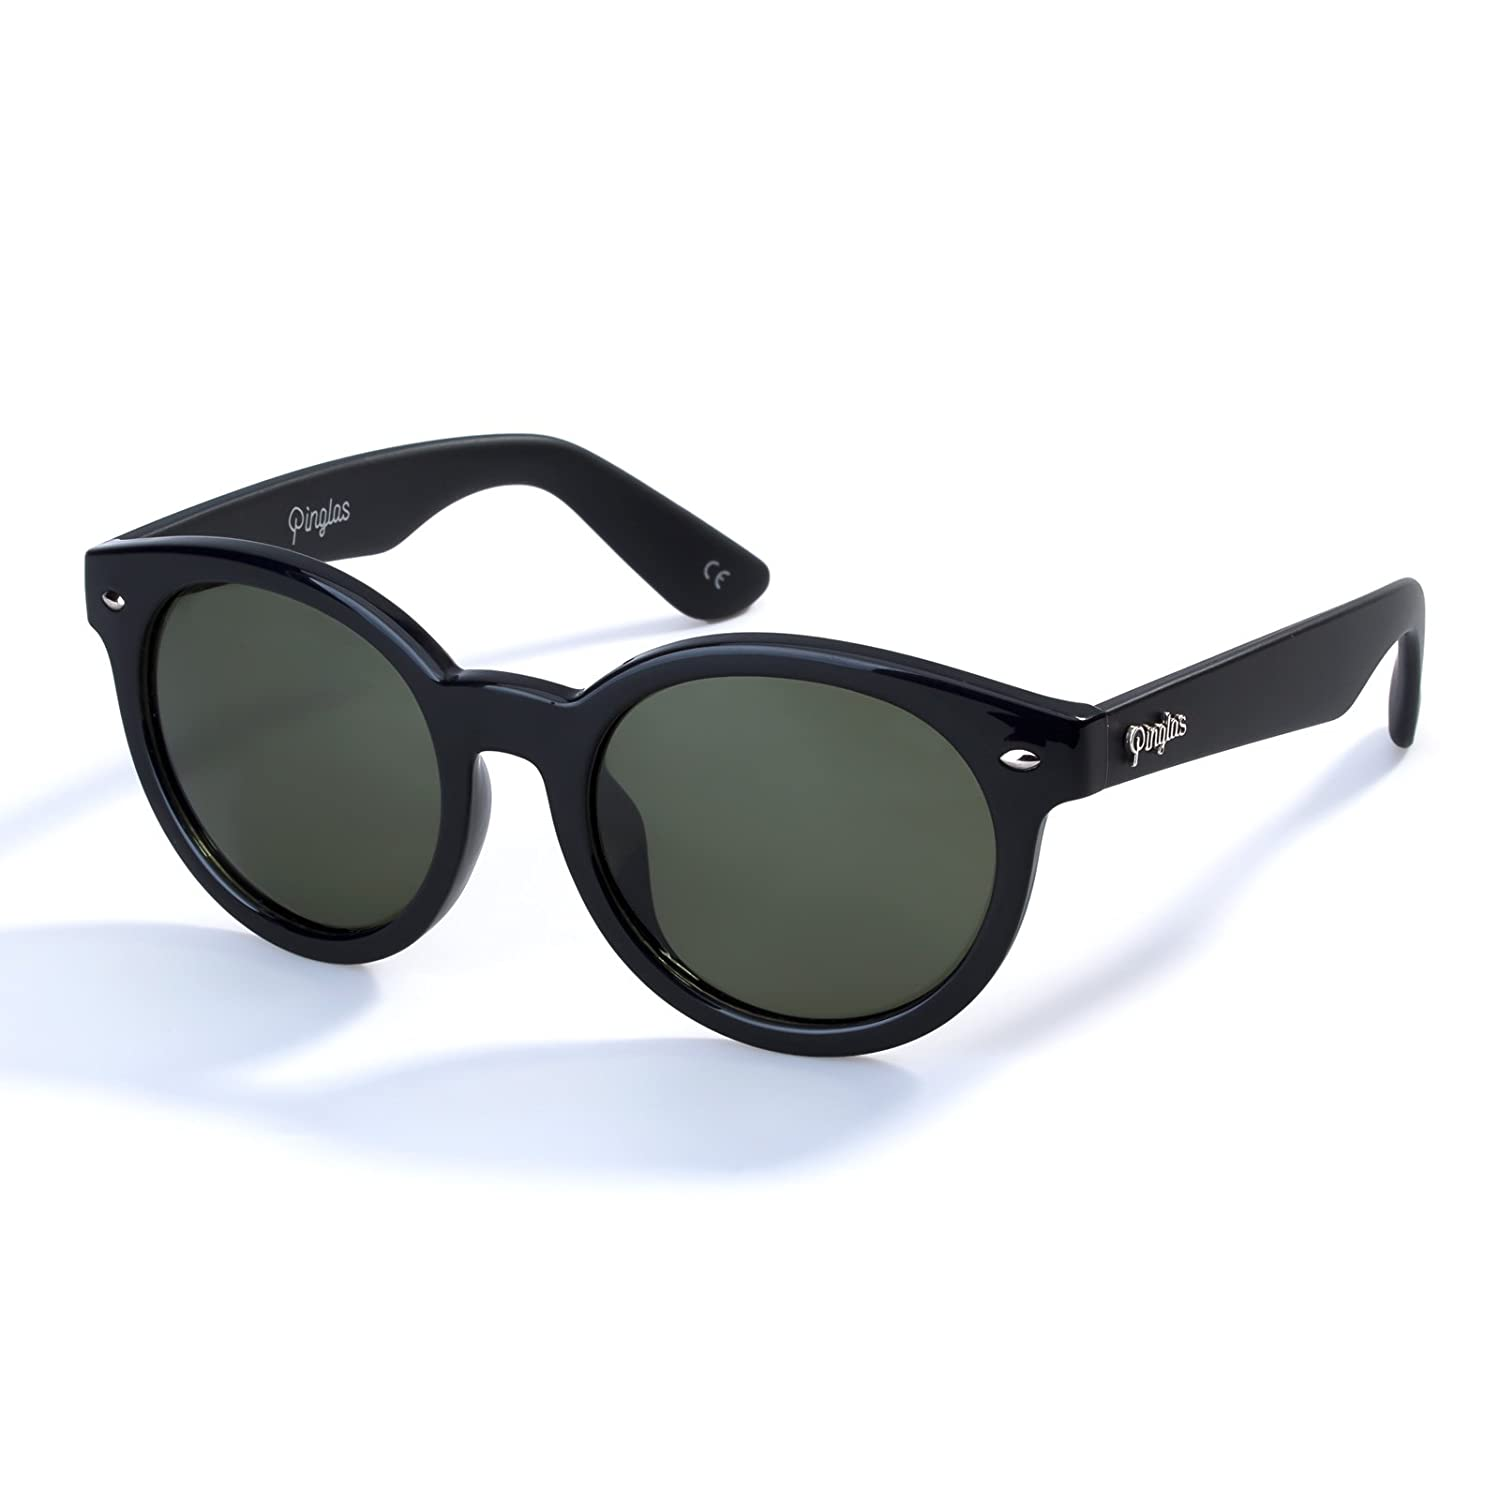 5318024a19d Amazon.com  Vintage Round Mirrored Polarized Sunglasses Dark Green Lens UV  Protection  Sports   Outdoors